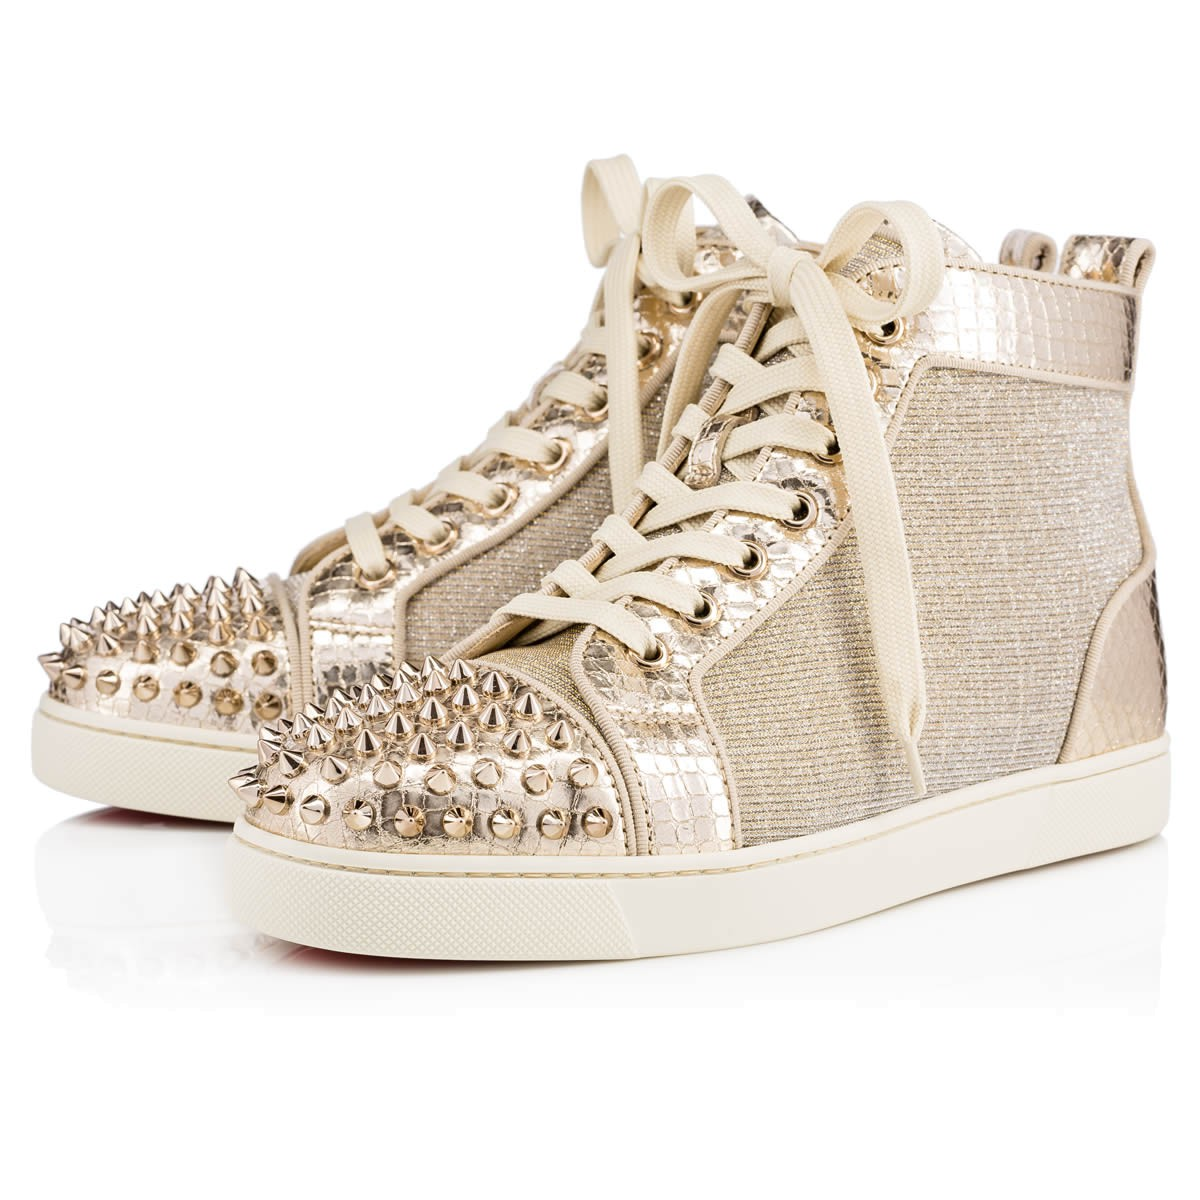 online store d9e66 1bd26 Lou Spikes Metallic High-Top Sneakers in Version Gold